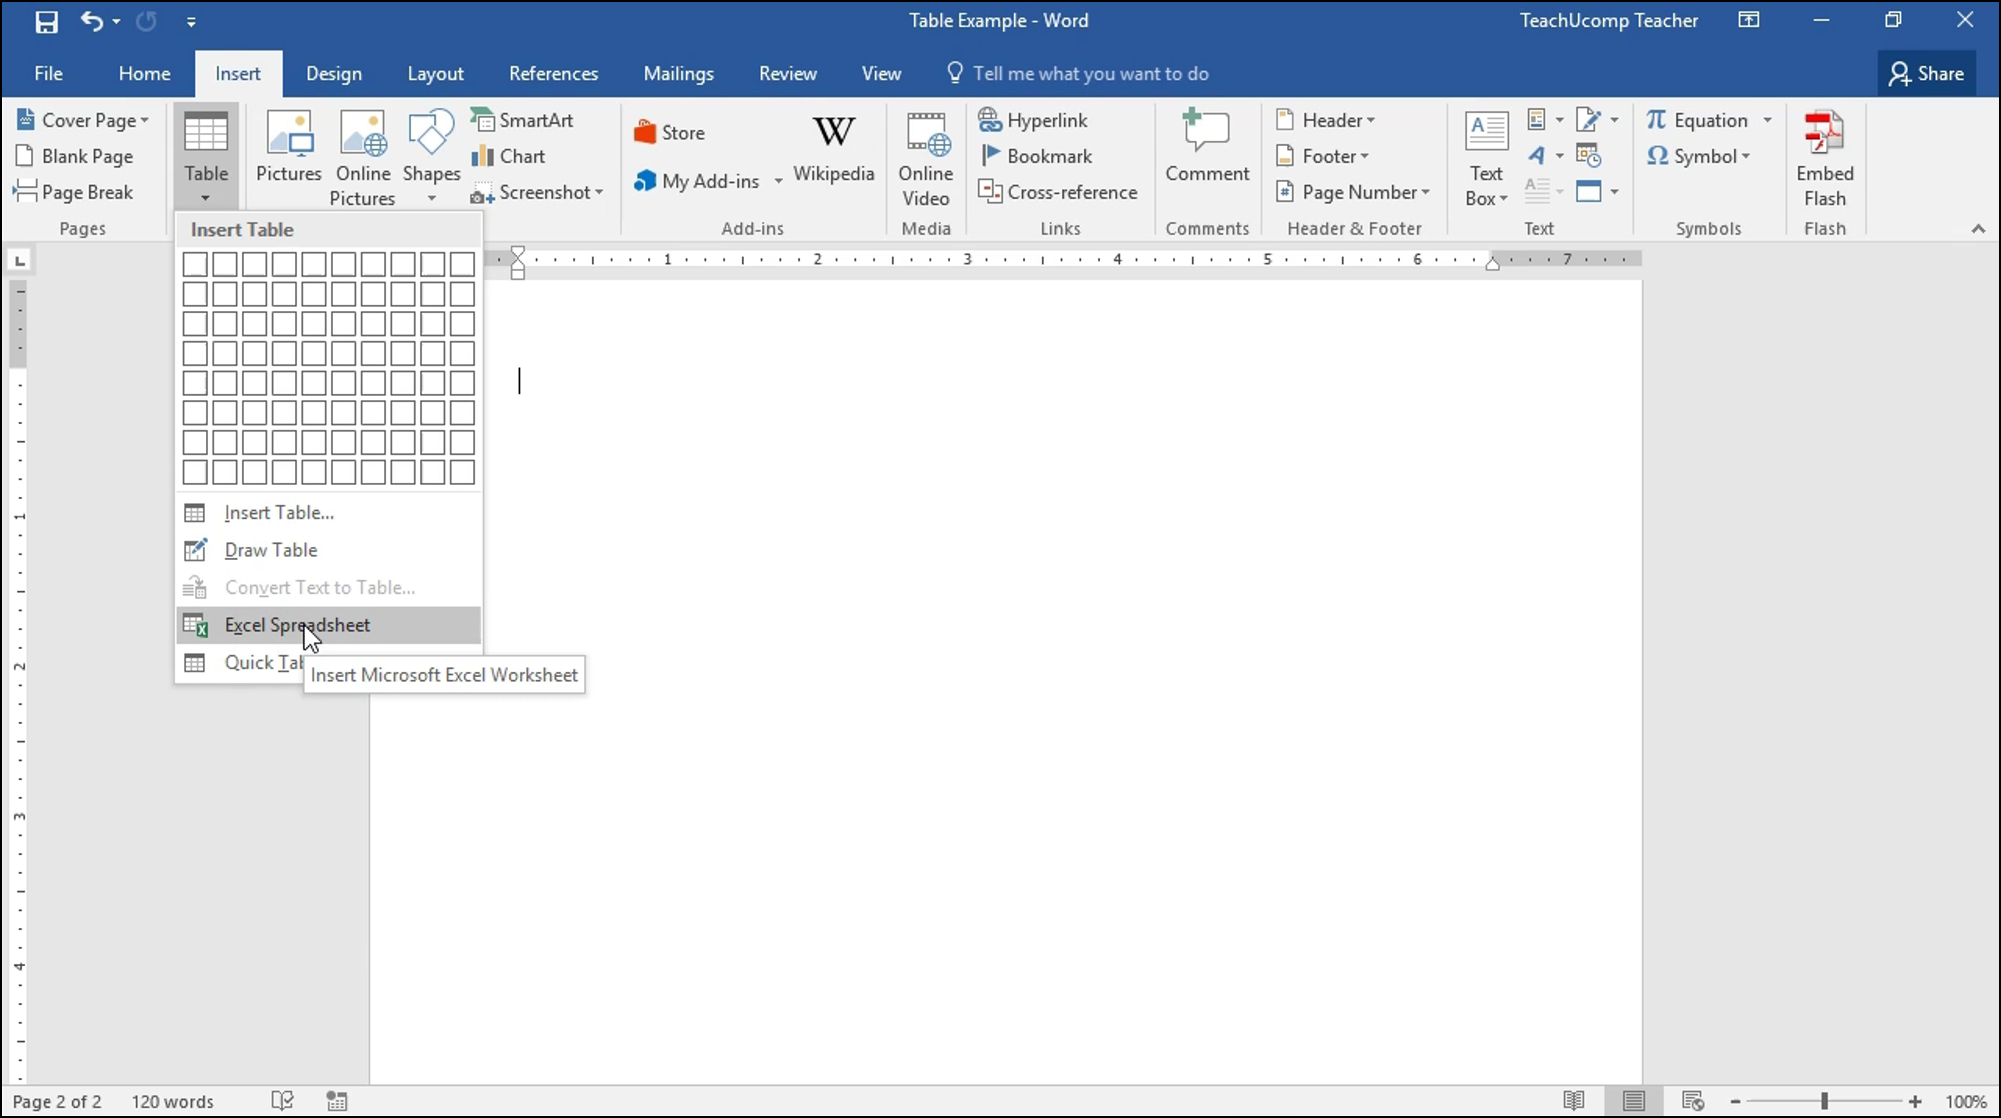 Insert An Excel Worksheet Into A Word Document - Tutorial For Word Spreadsheet